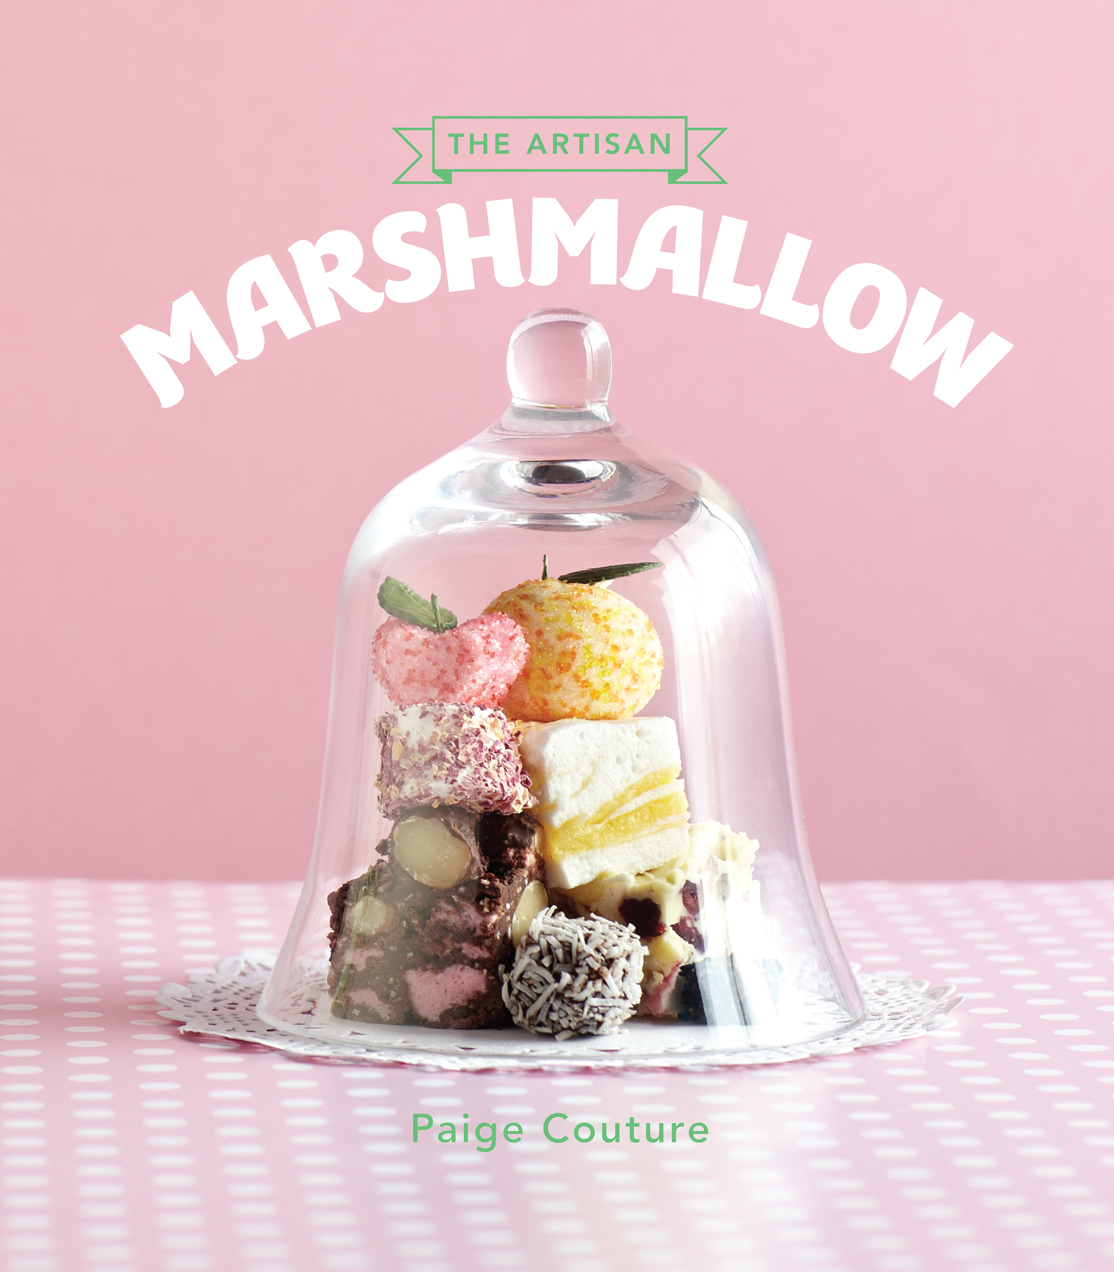 Artisan Marshmallow, The